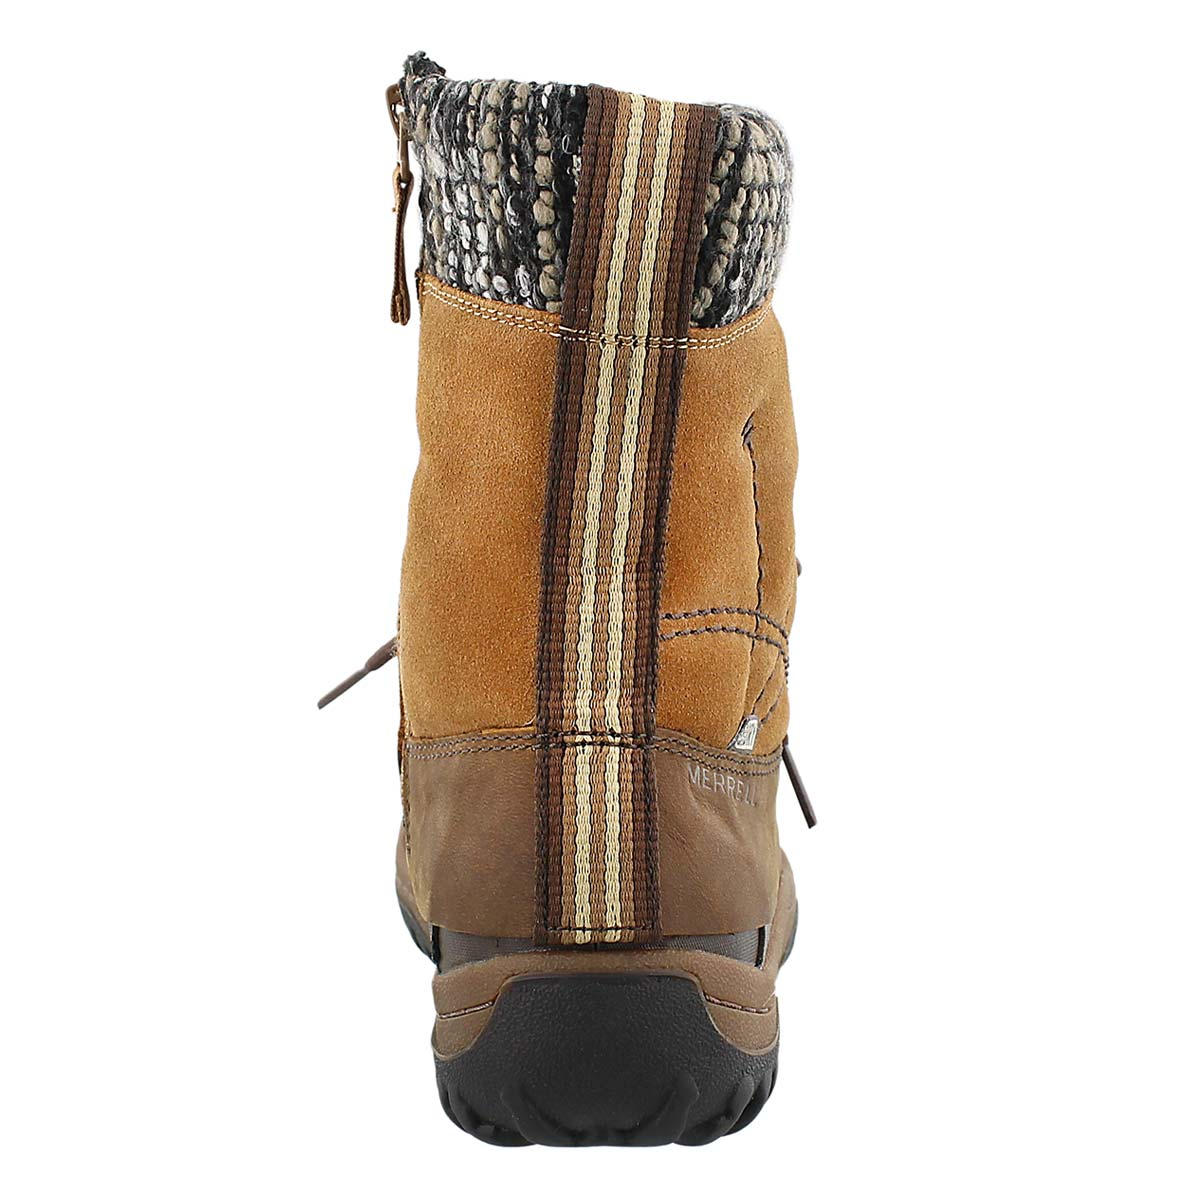 Lds Bolero brn sugar wtrpf winter boot